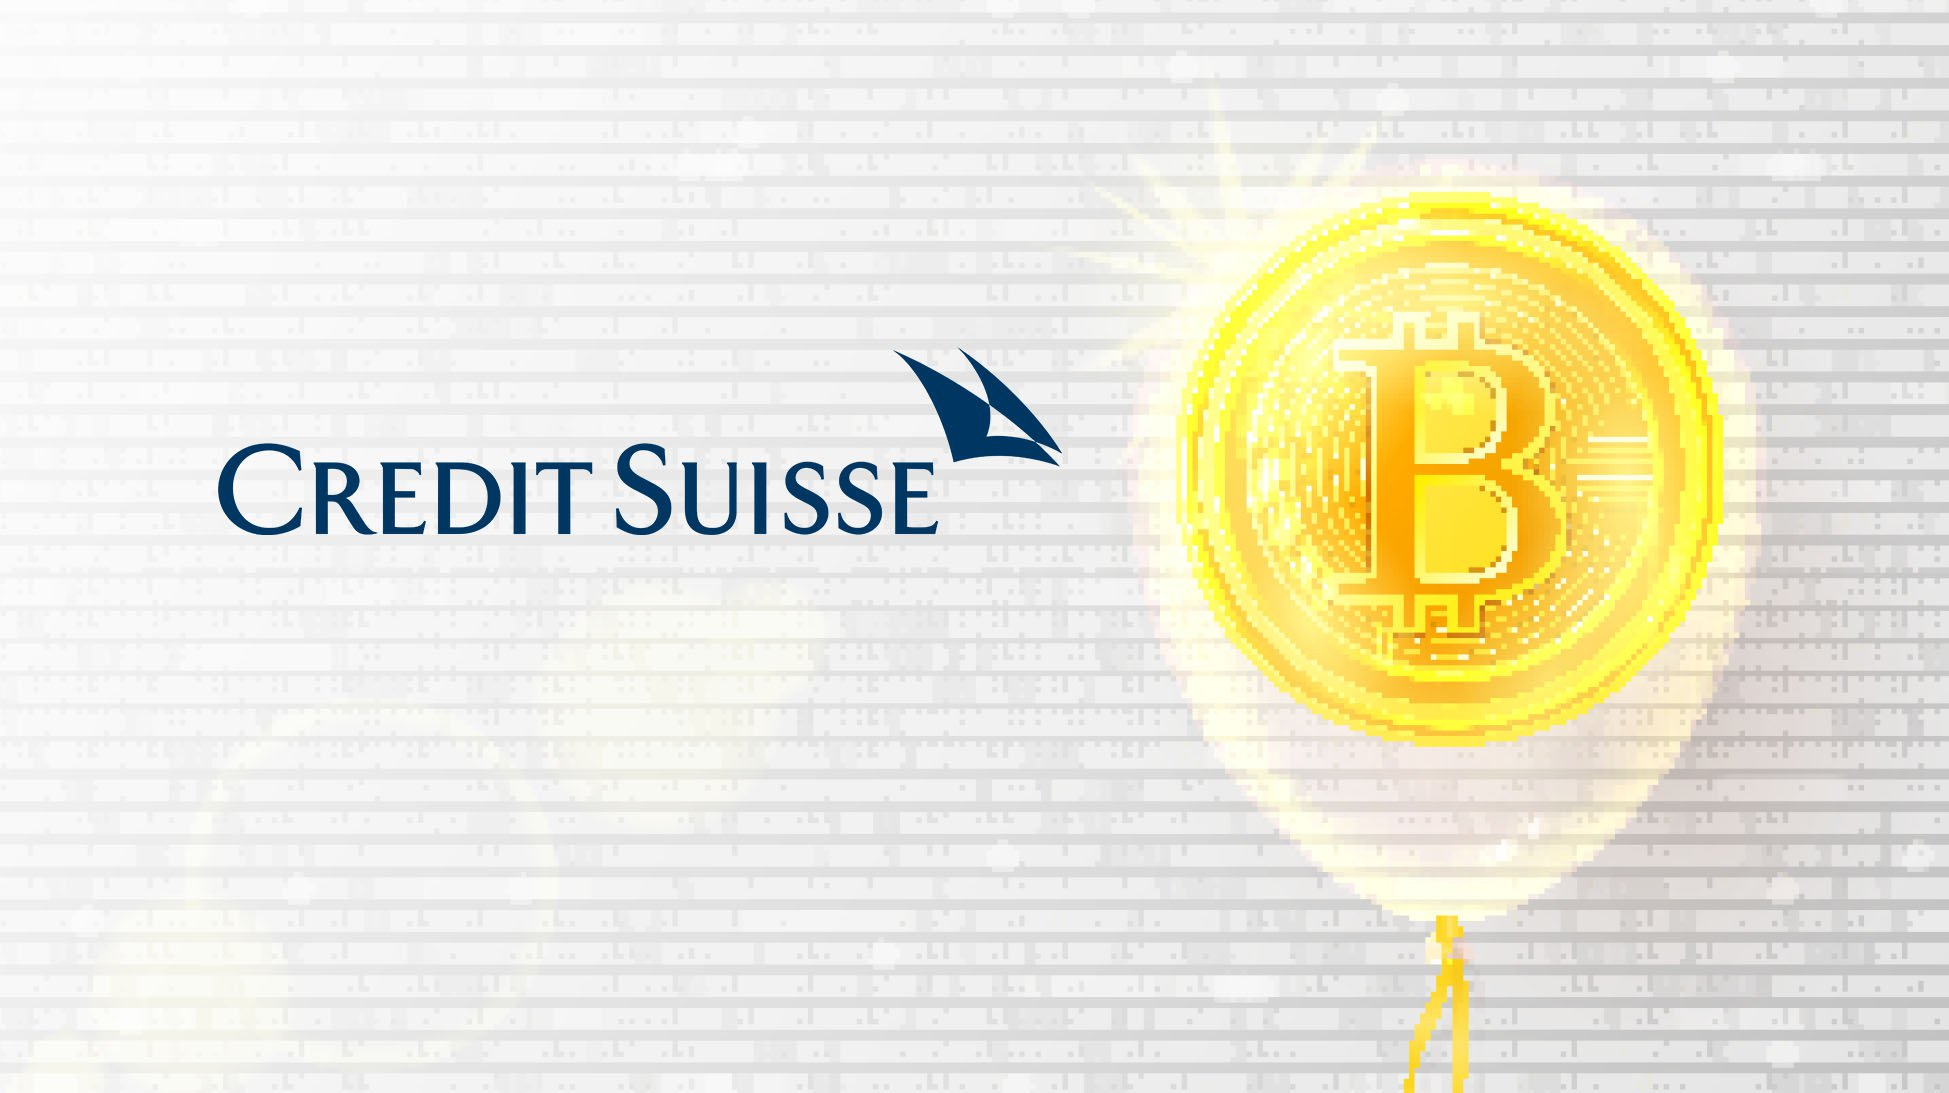 Credit Suisse Argues Irrational Exuberance Around ICOs Indicates Bitcoin Bubble